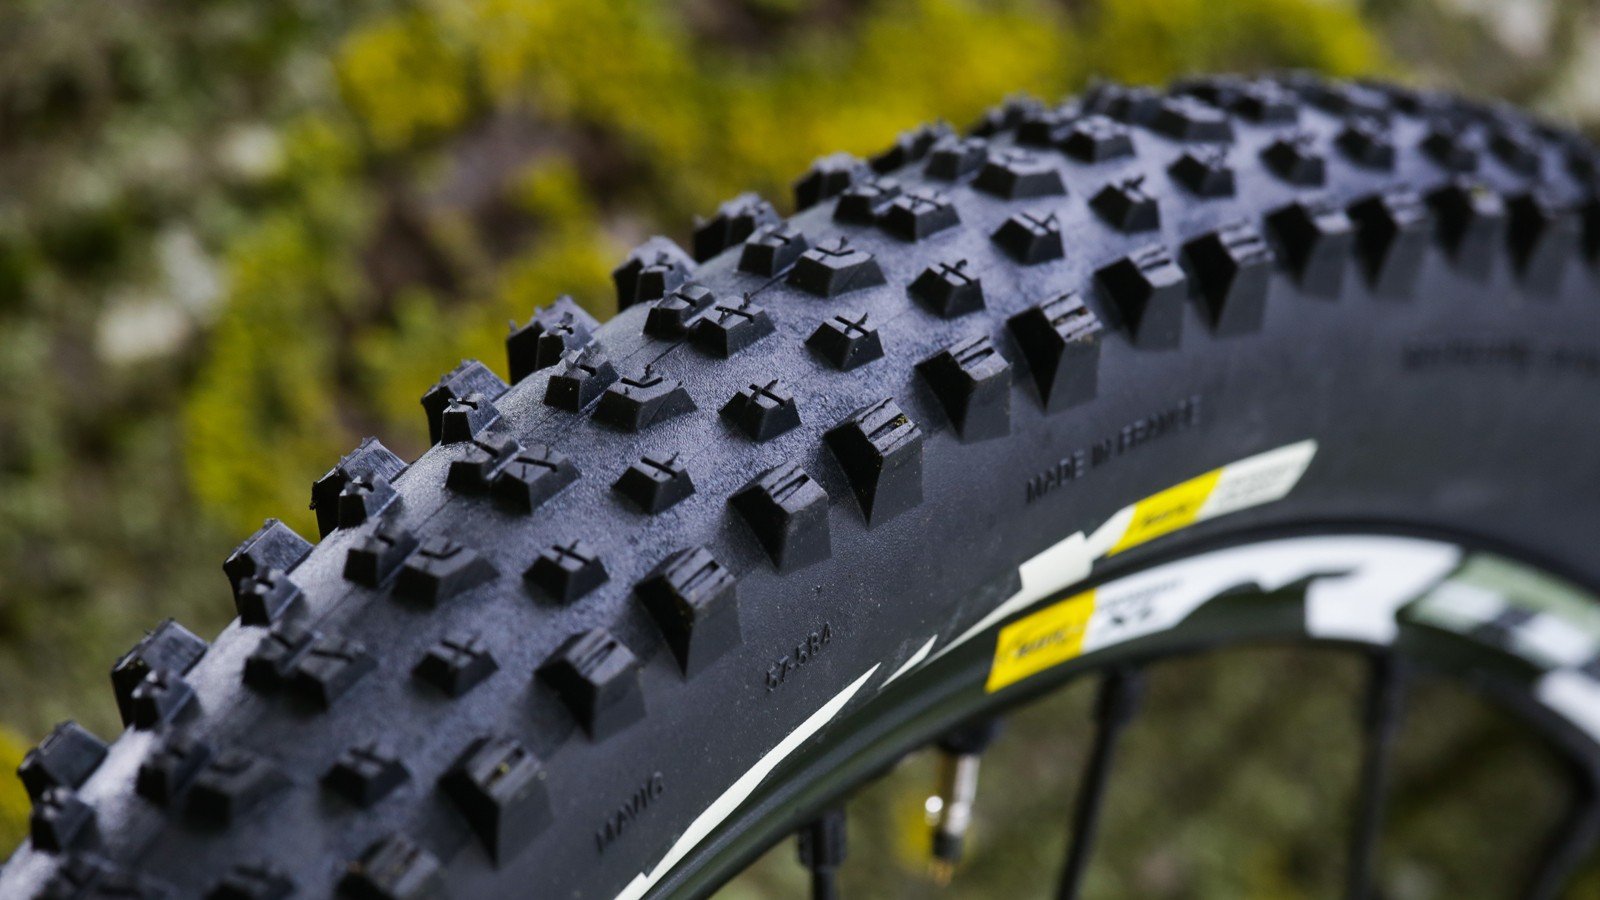 The new Crossmax Quest tires are designed to work together as part of the Crossmax XL wheel and tire system